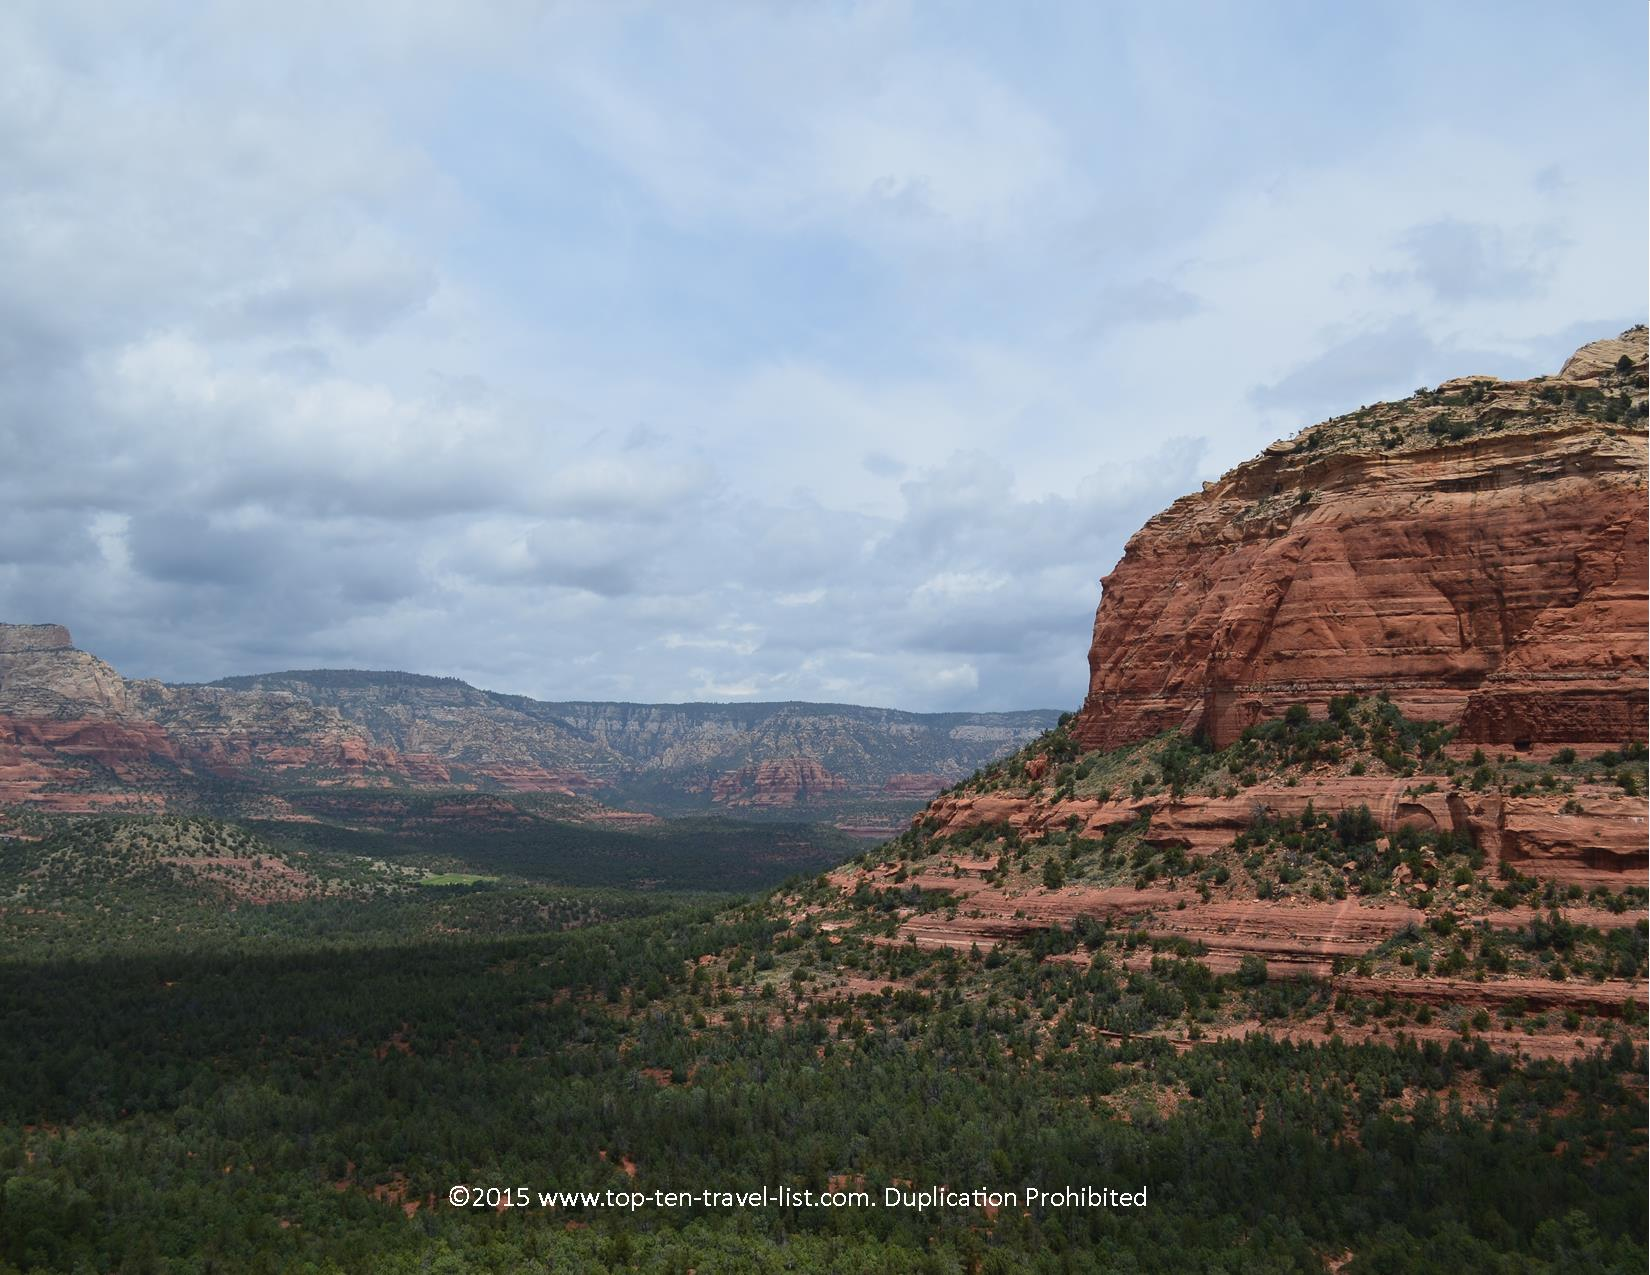 Colorful rock formations along the Devil's Bridge hike in Sedona, Arizona